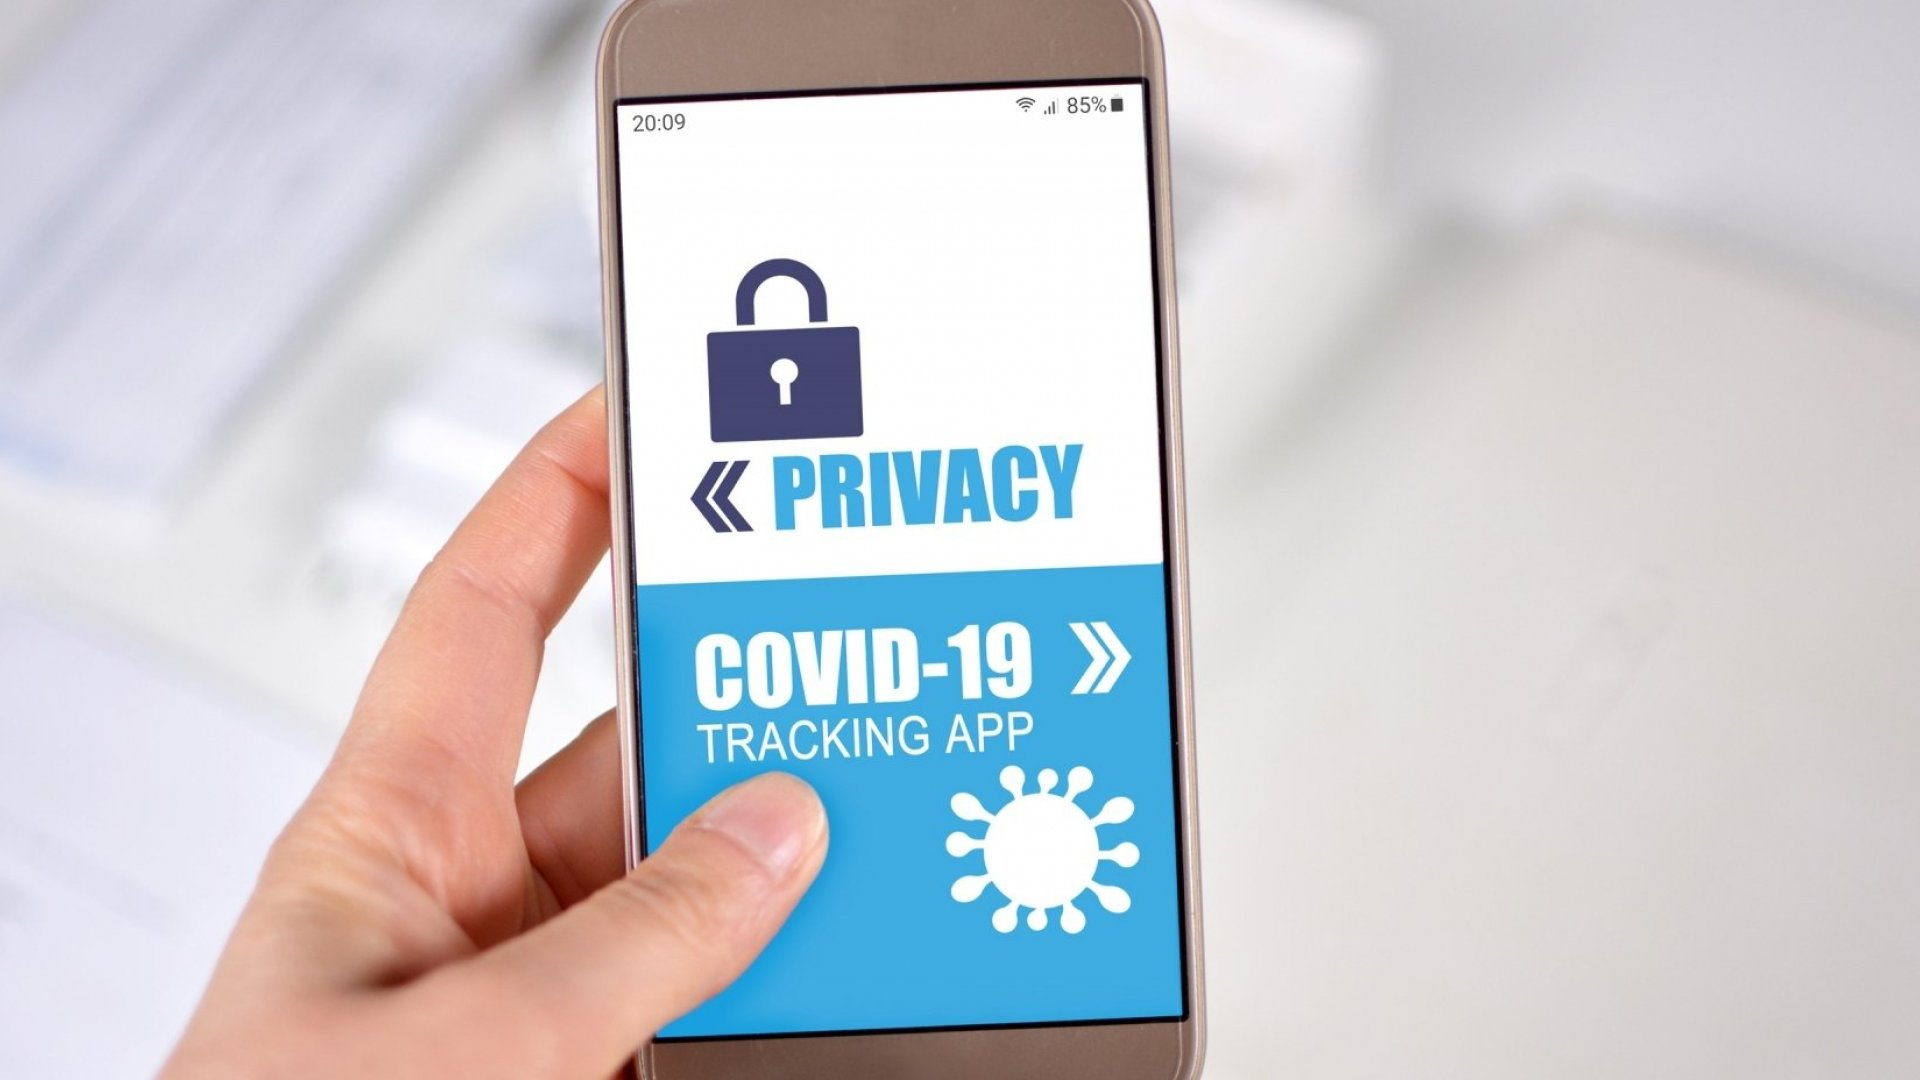 right to privacy, covid-19